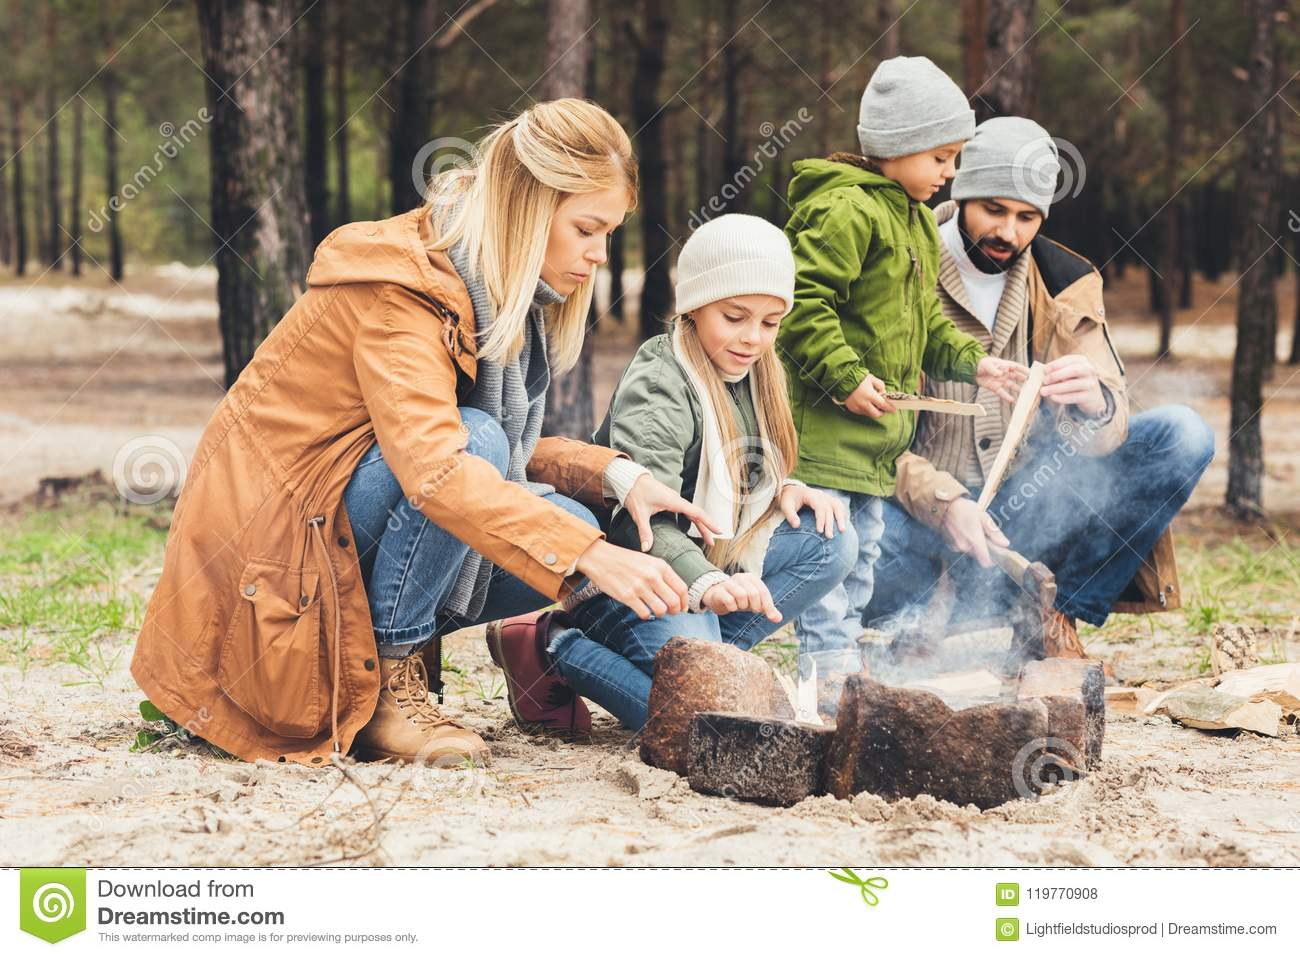 mother and daughter warming hands with bonfire while father and son